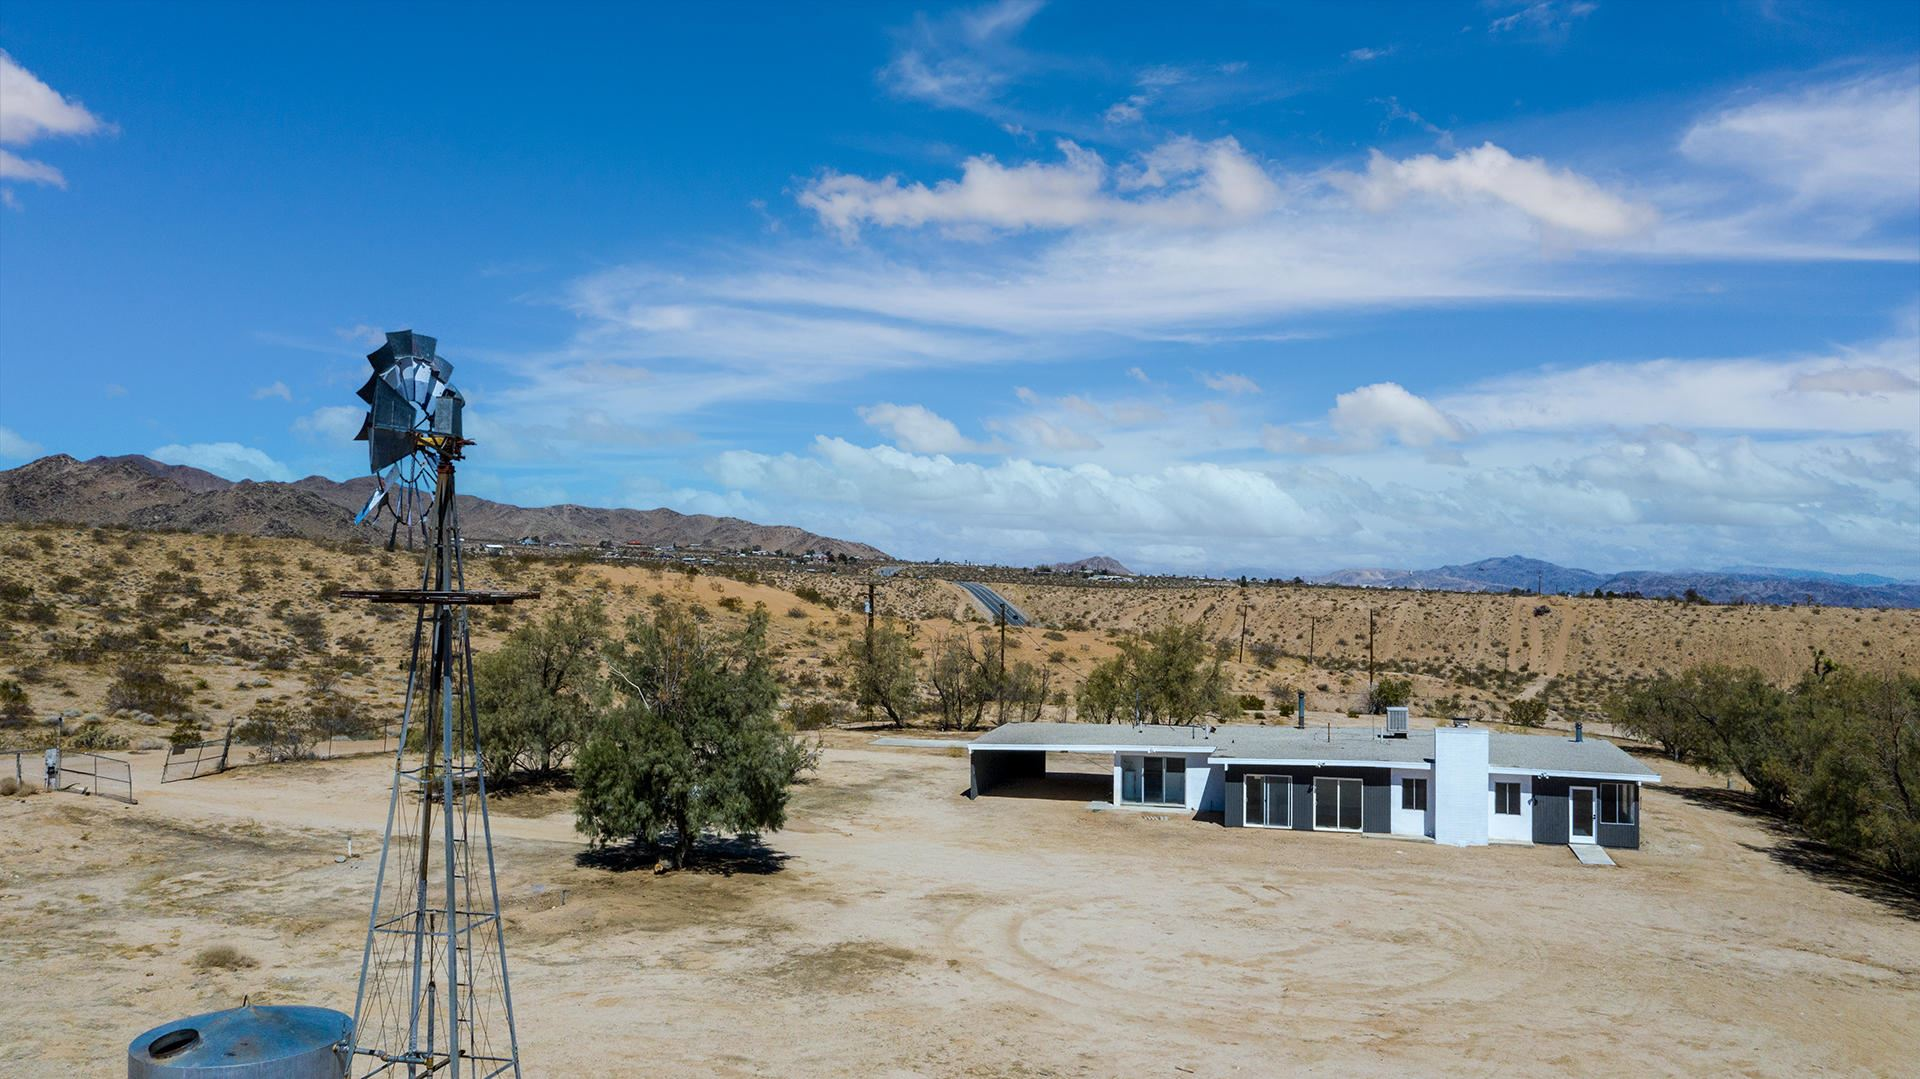 388 Old Woman Springs Road, Yucca Valley, CA 92284 - MLS#: 219060500